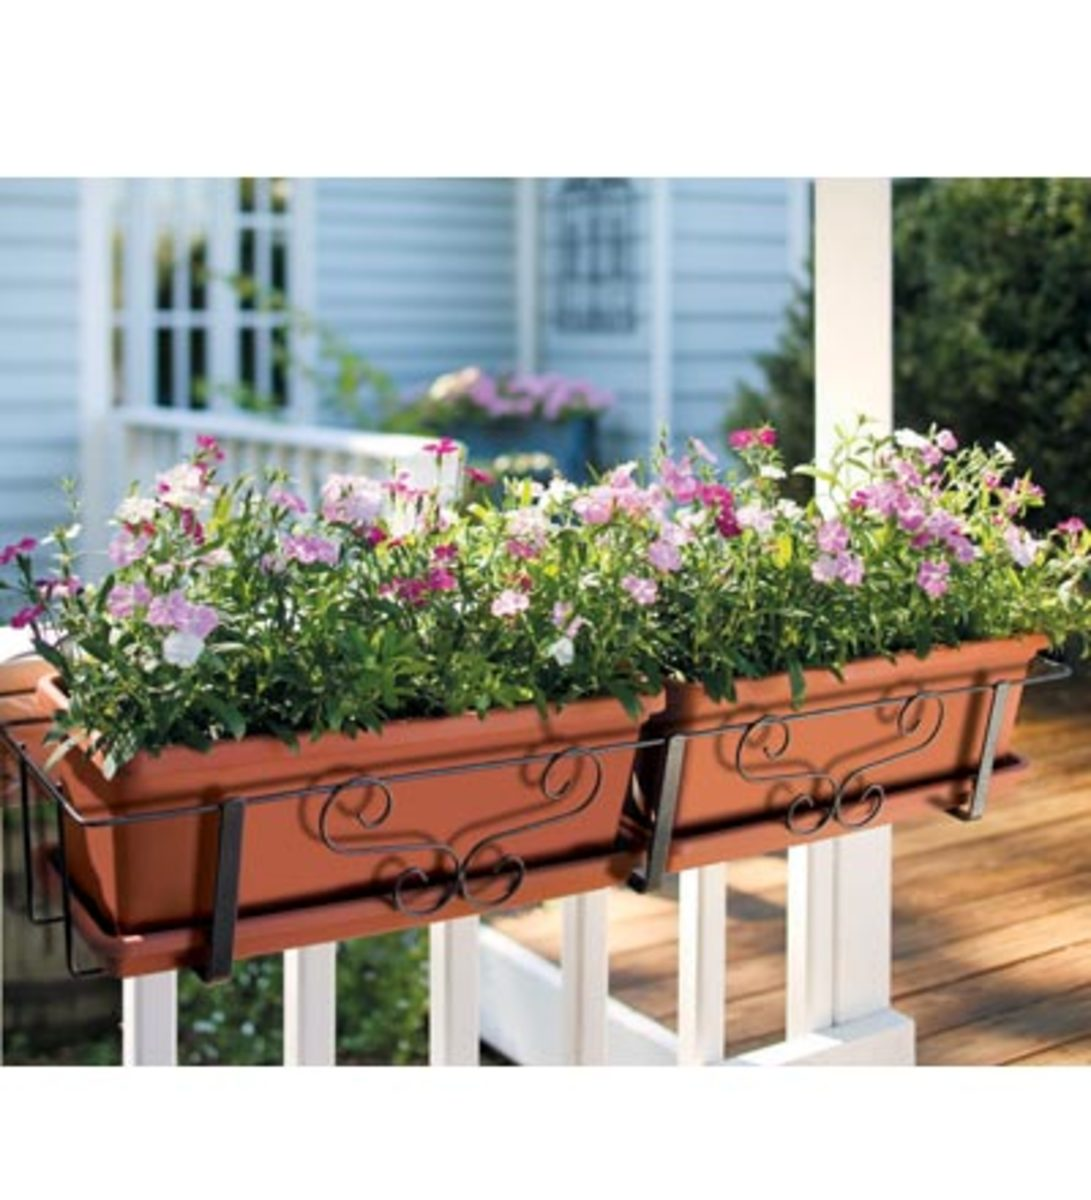 Terra cotta colored plastic boxes, hung from the balcony railing, can bring color to any balcony.